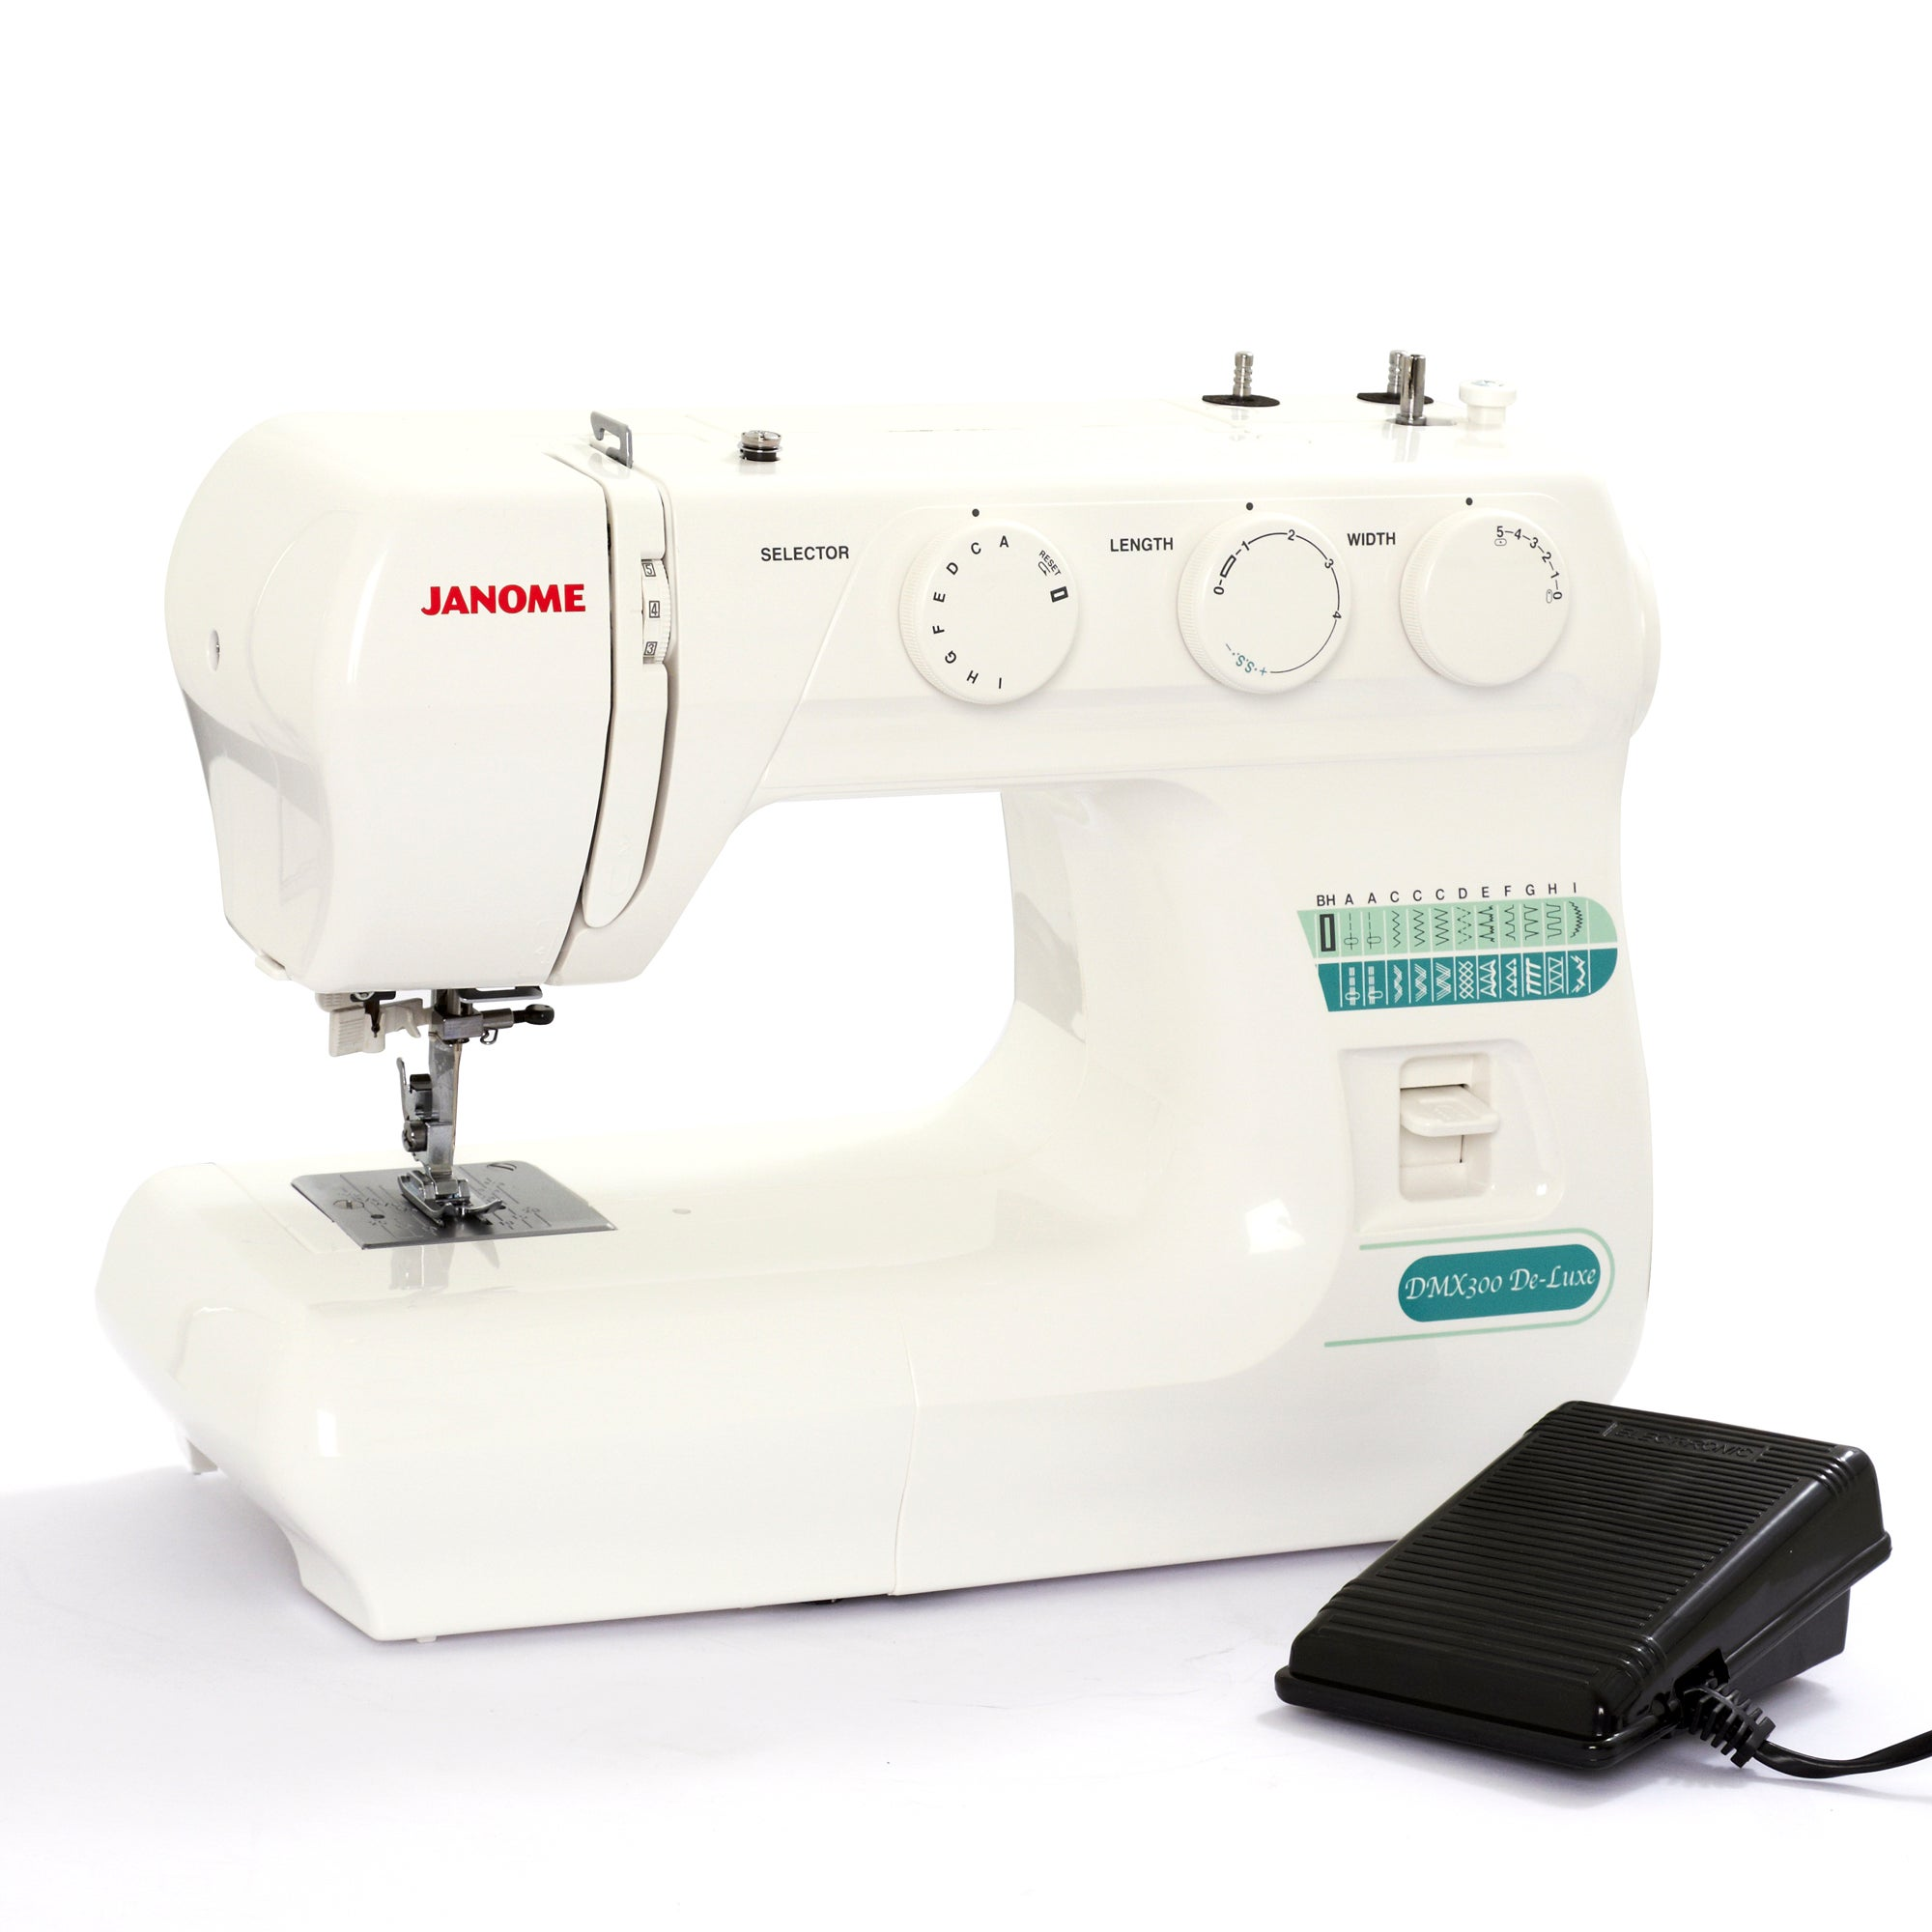 Janome DMX300 Deluxe Sewing Machine